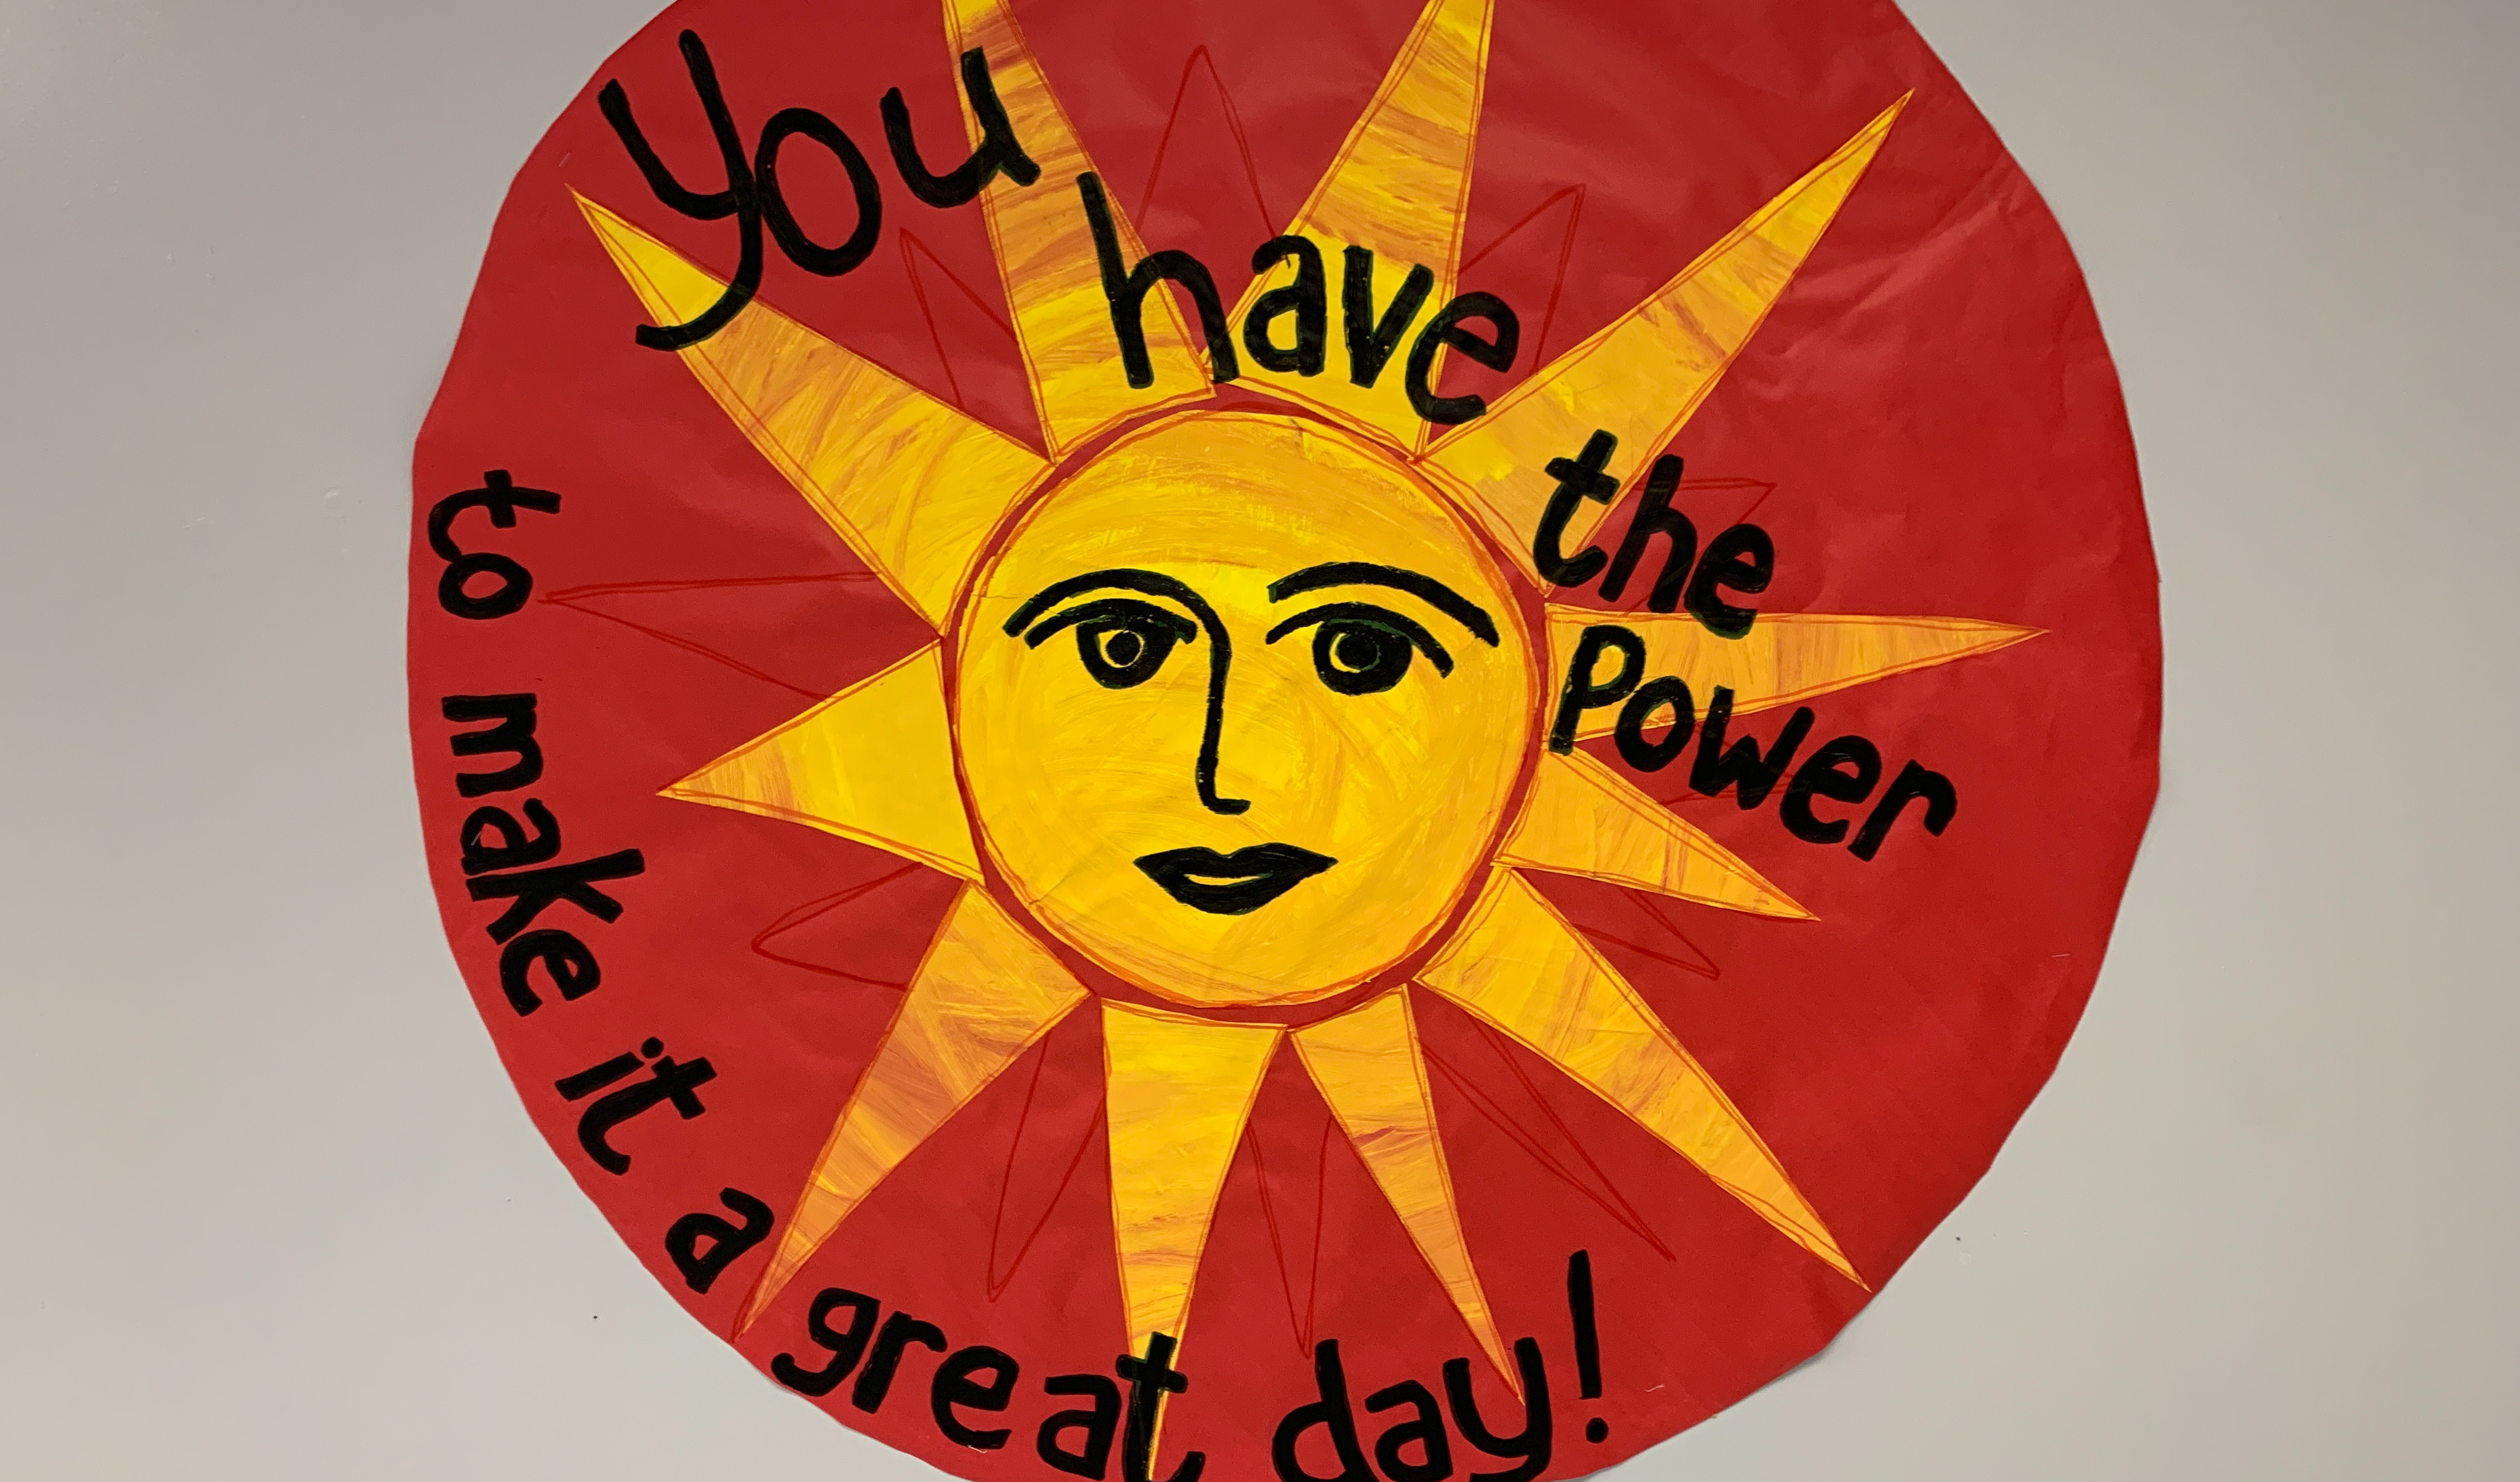 You have the power to make it a great day